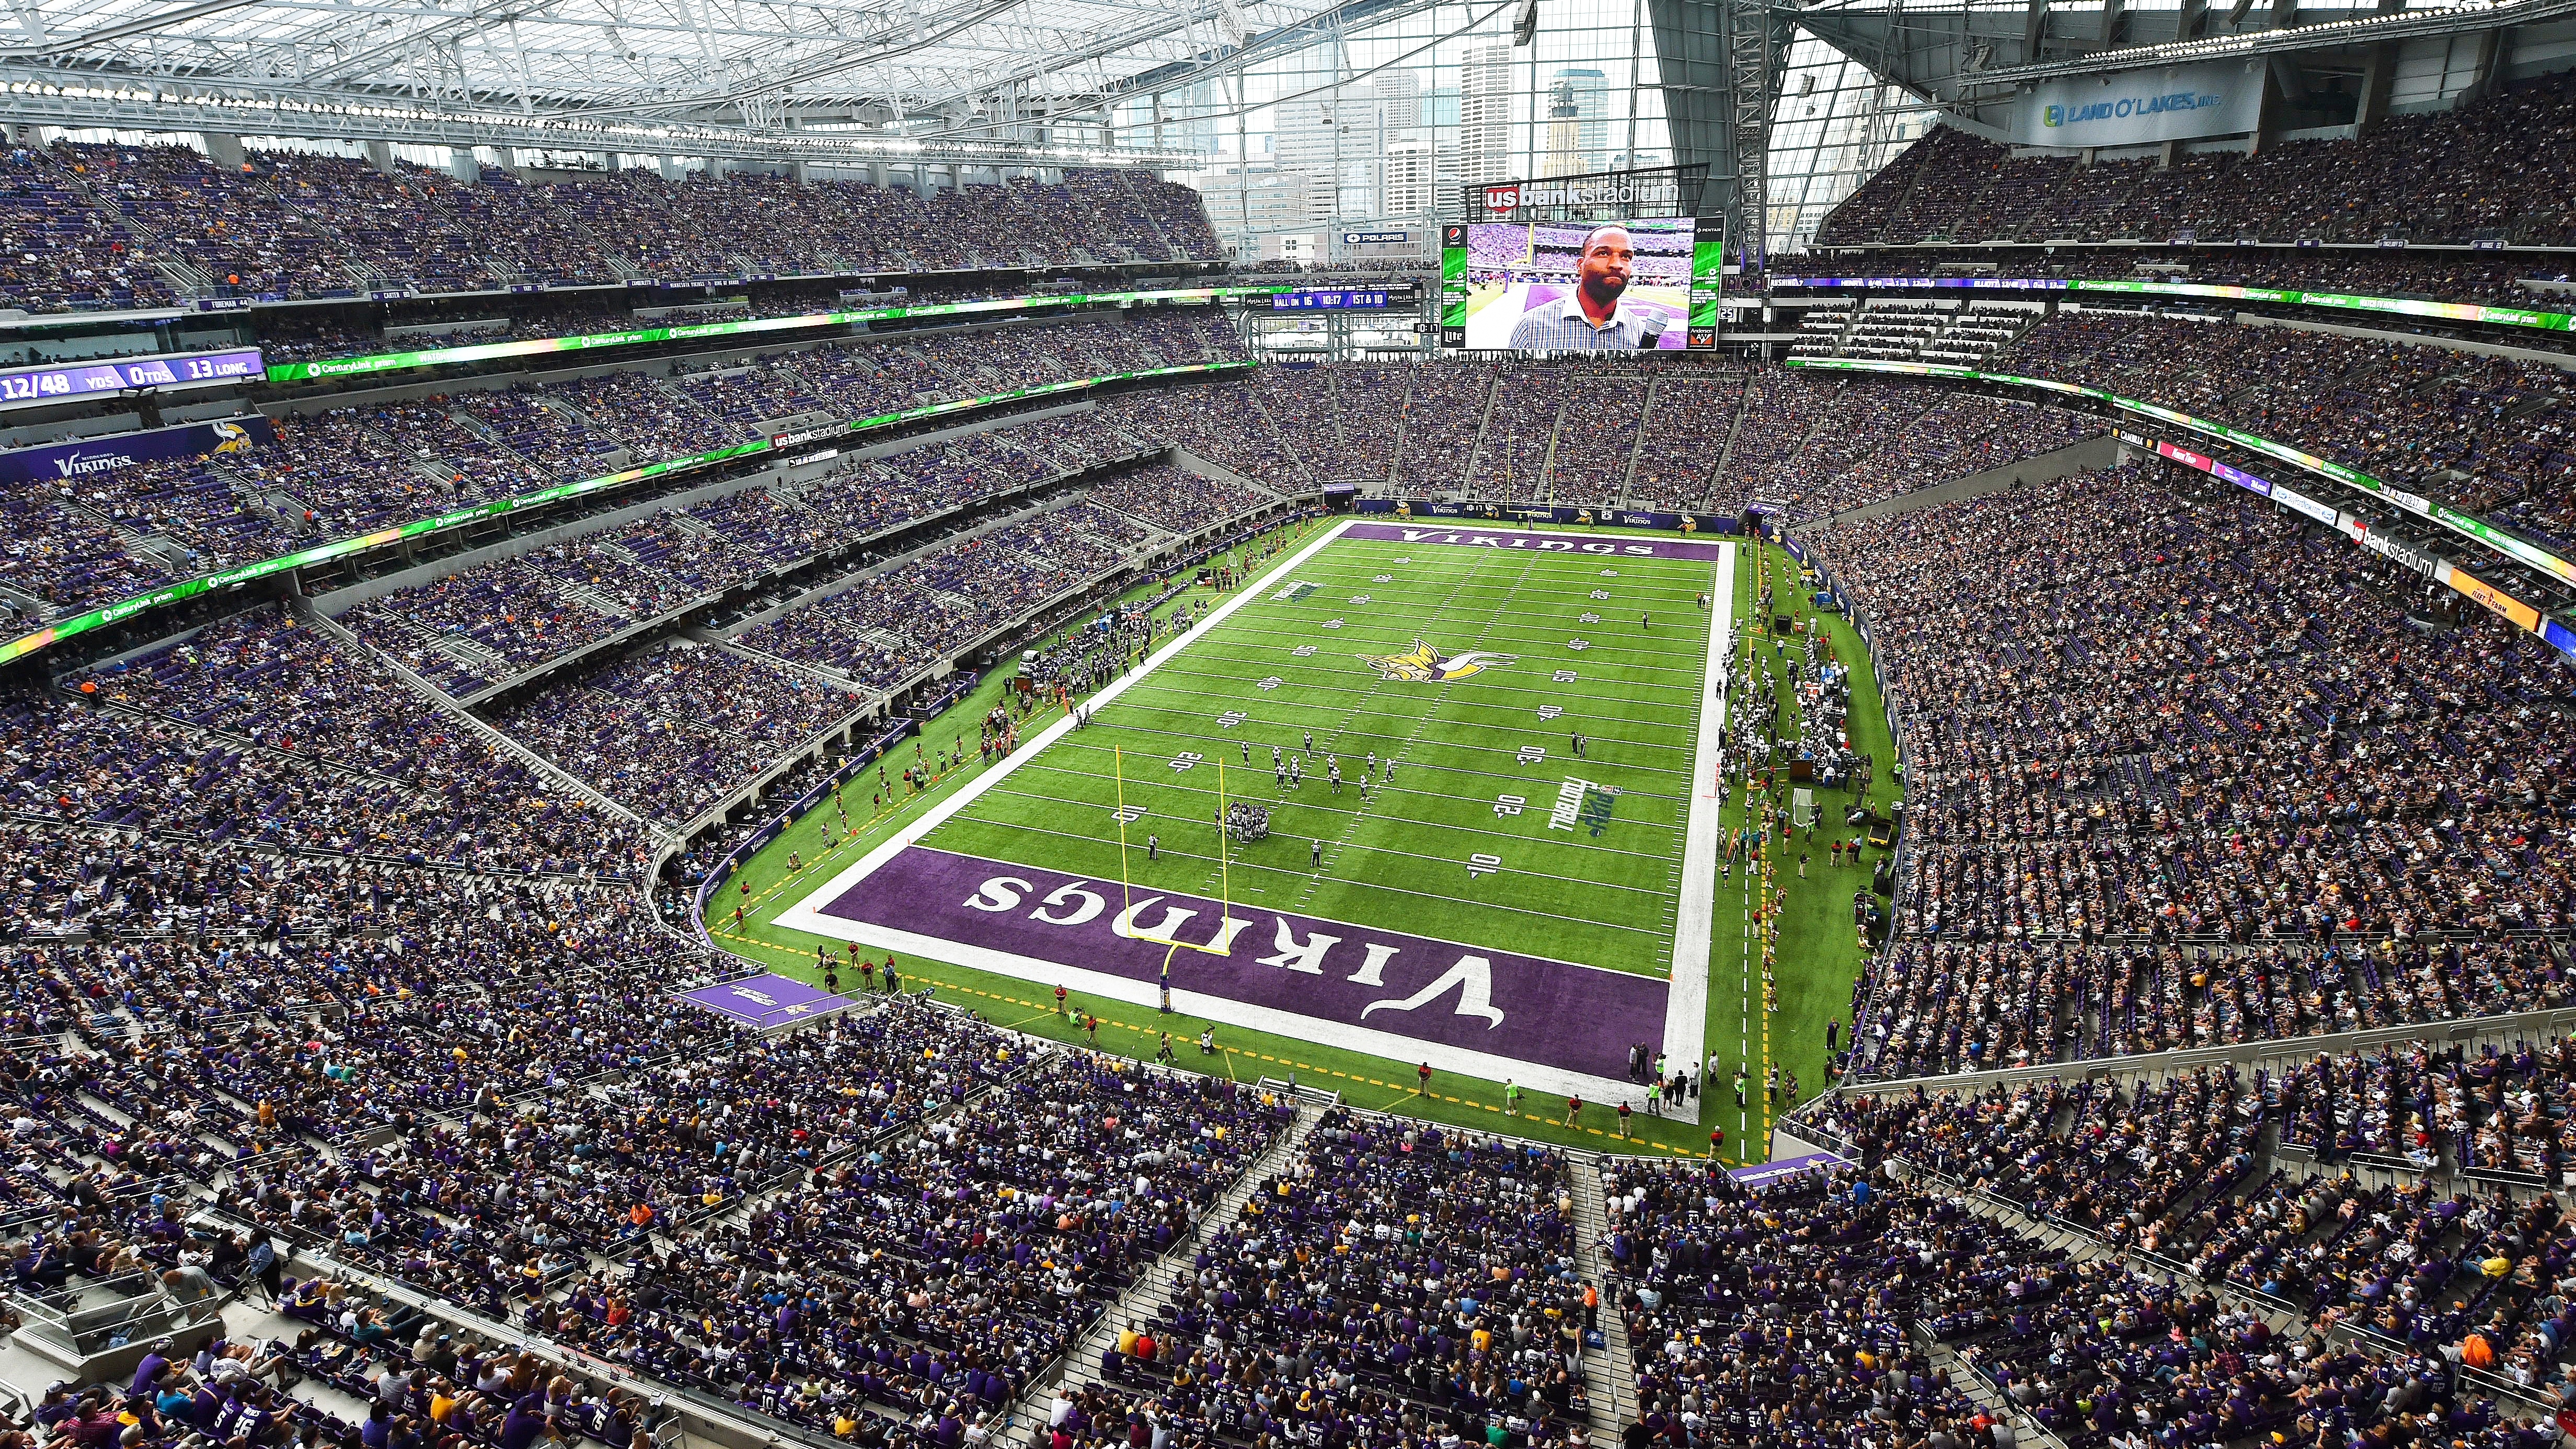 Super Bowl Lii In Minnesota Will Celebrate All Things Winter throughout Super Bowl Attendance 2018